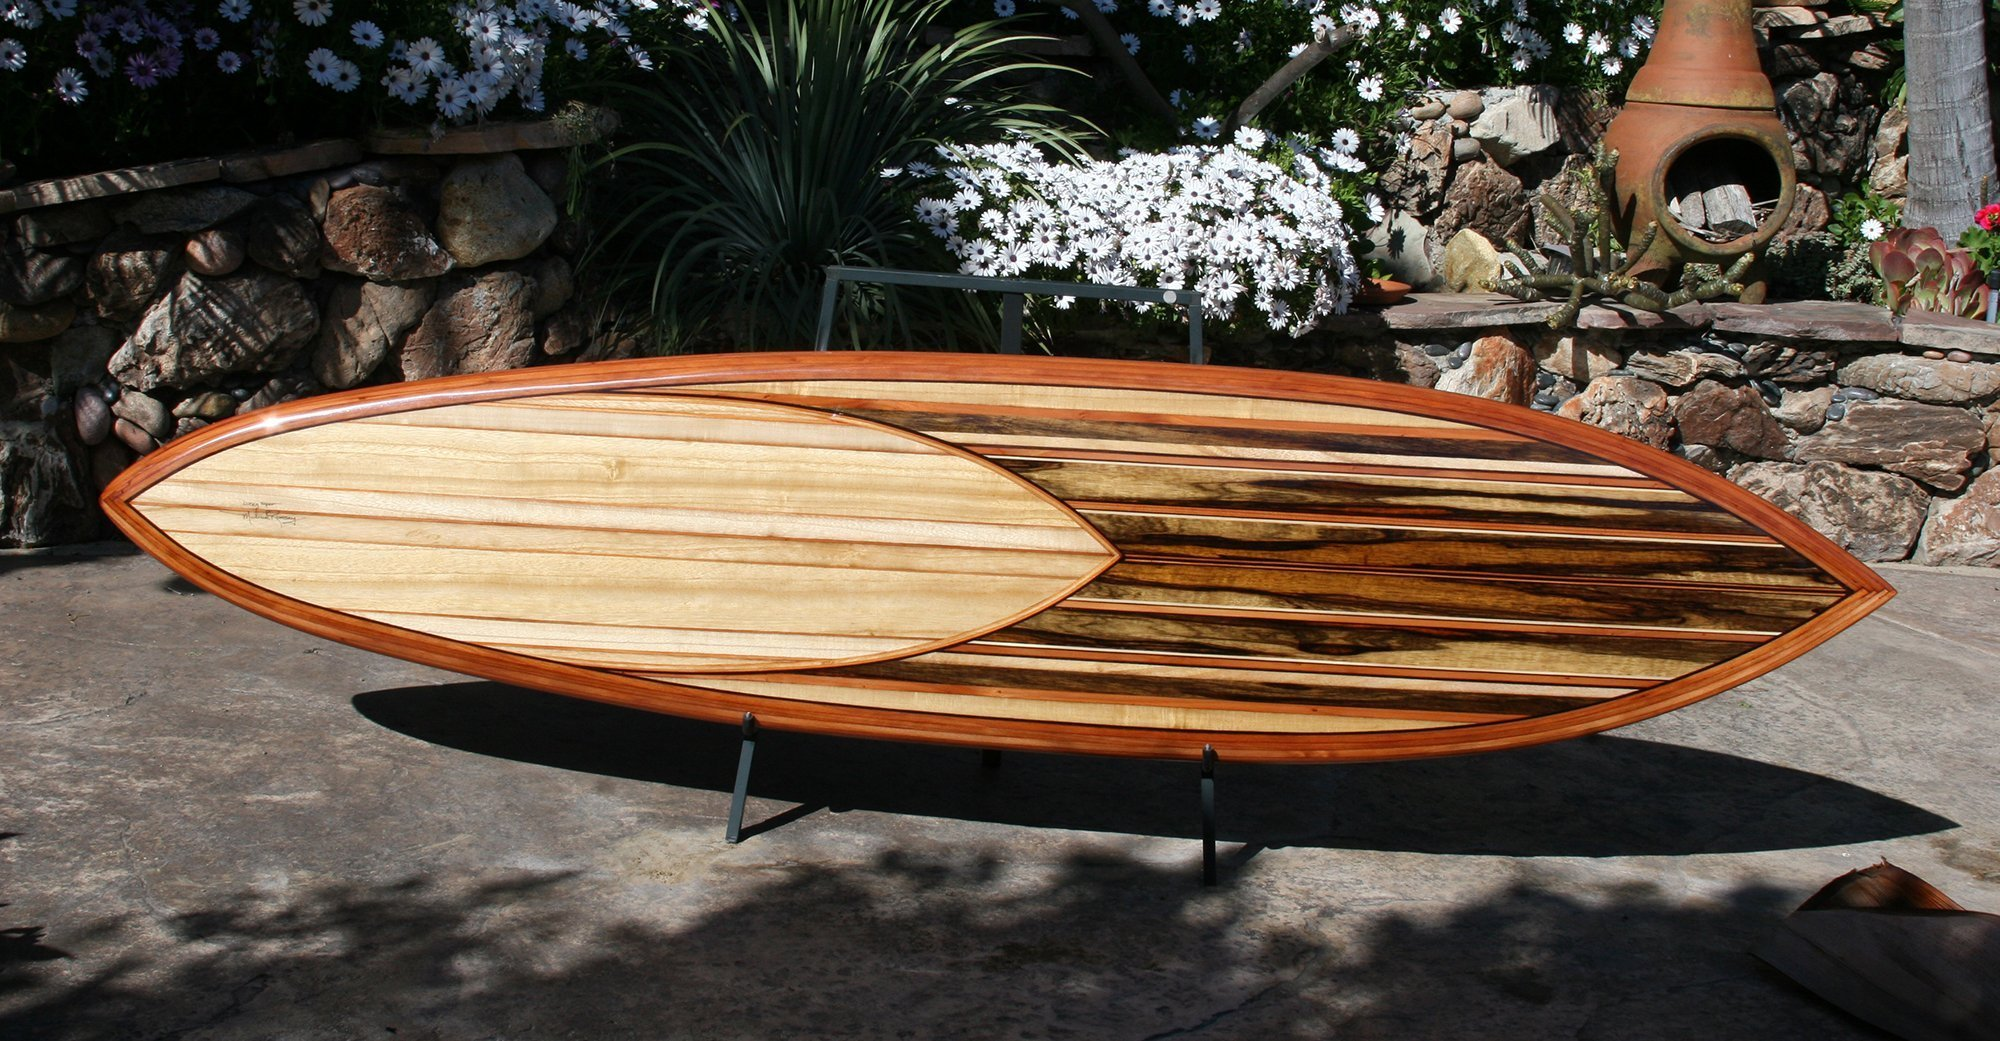 decorative wood surfboard titled lucky man built by mike rumsey using cocobolo and other exotic lumber void of paint or stain